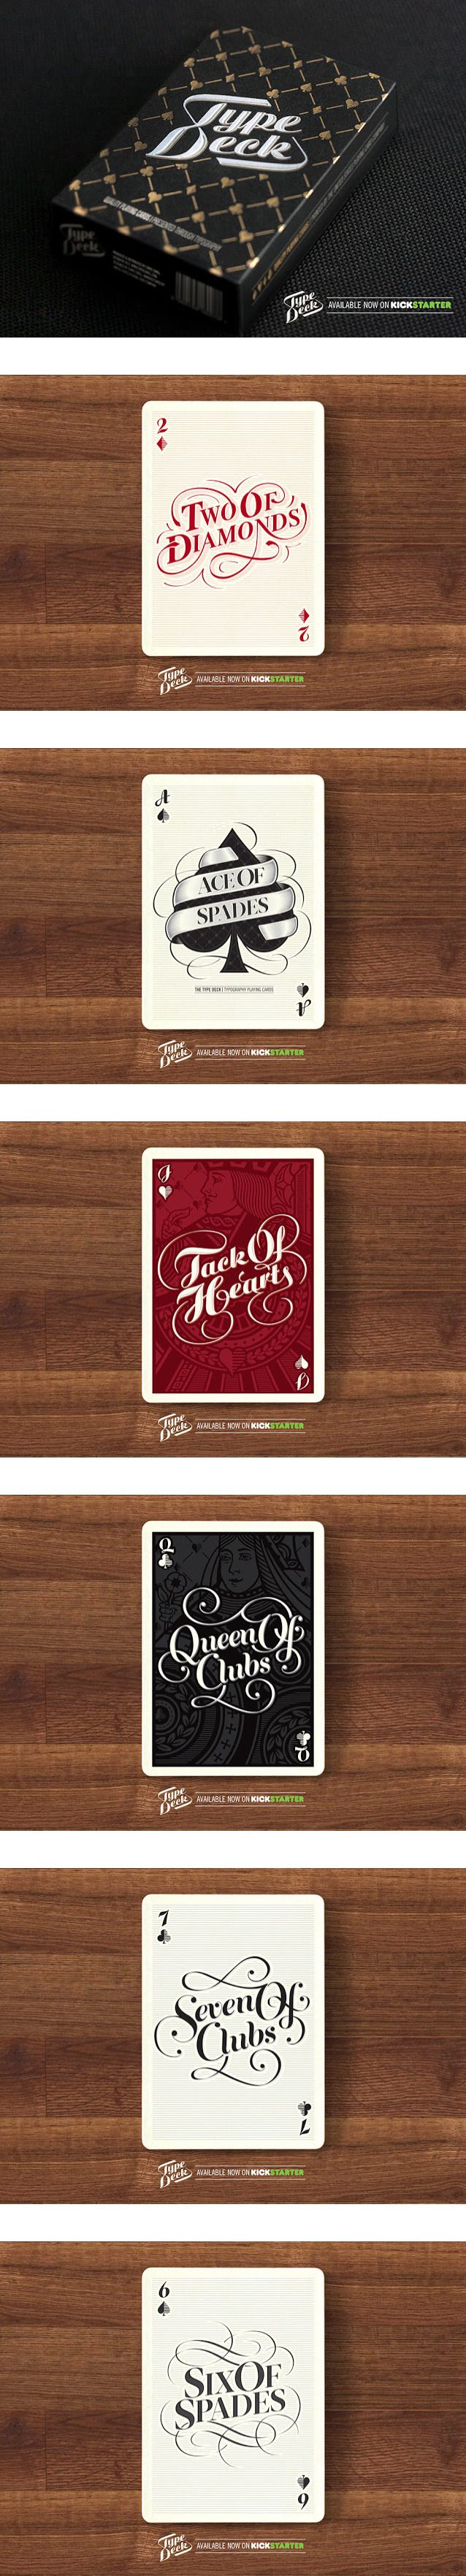 Best 25 playing card design ideas only on pinterest card deck the type deck typography playing cards baanklon Choice Image